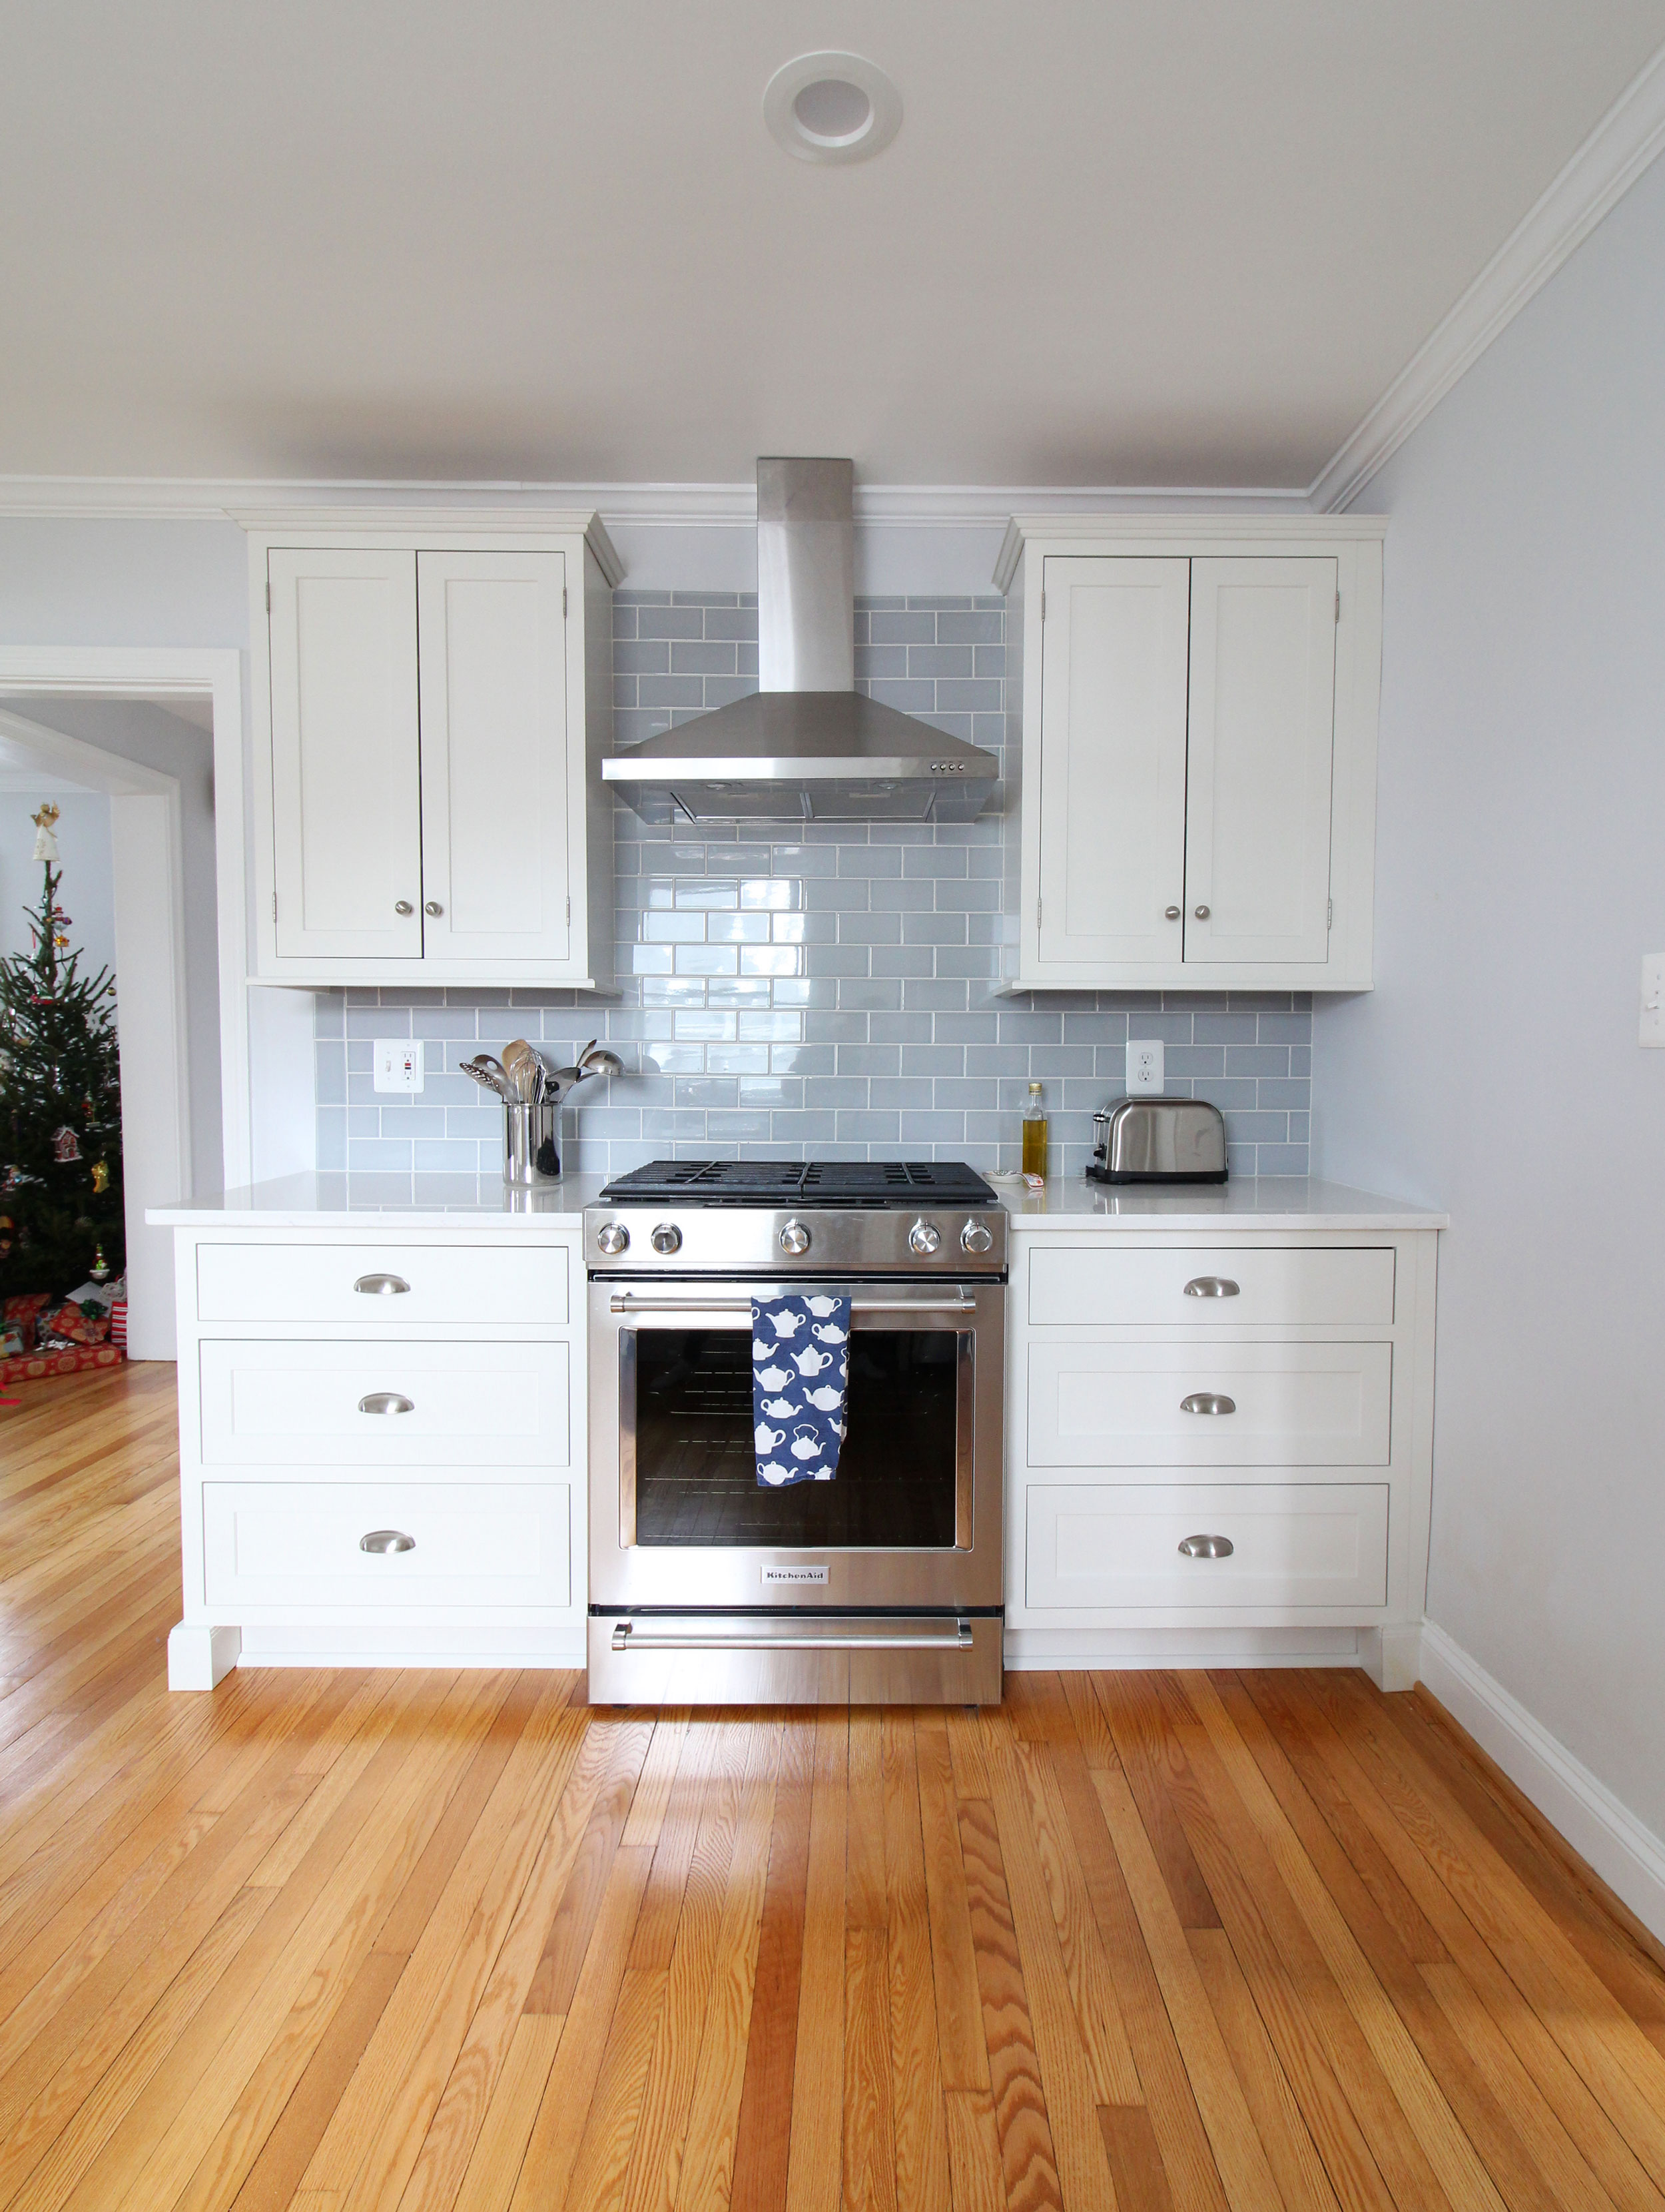 White-Inset-Cabinets-Blue-Tile-Transitional-Kitchen-1.jpg